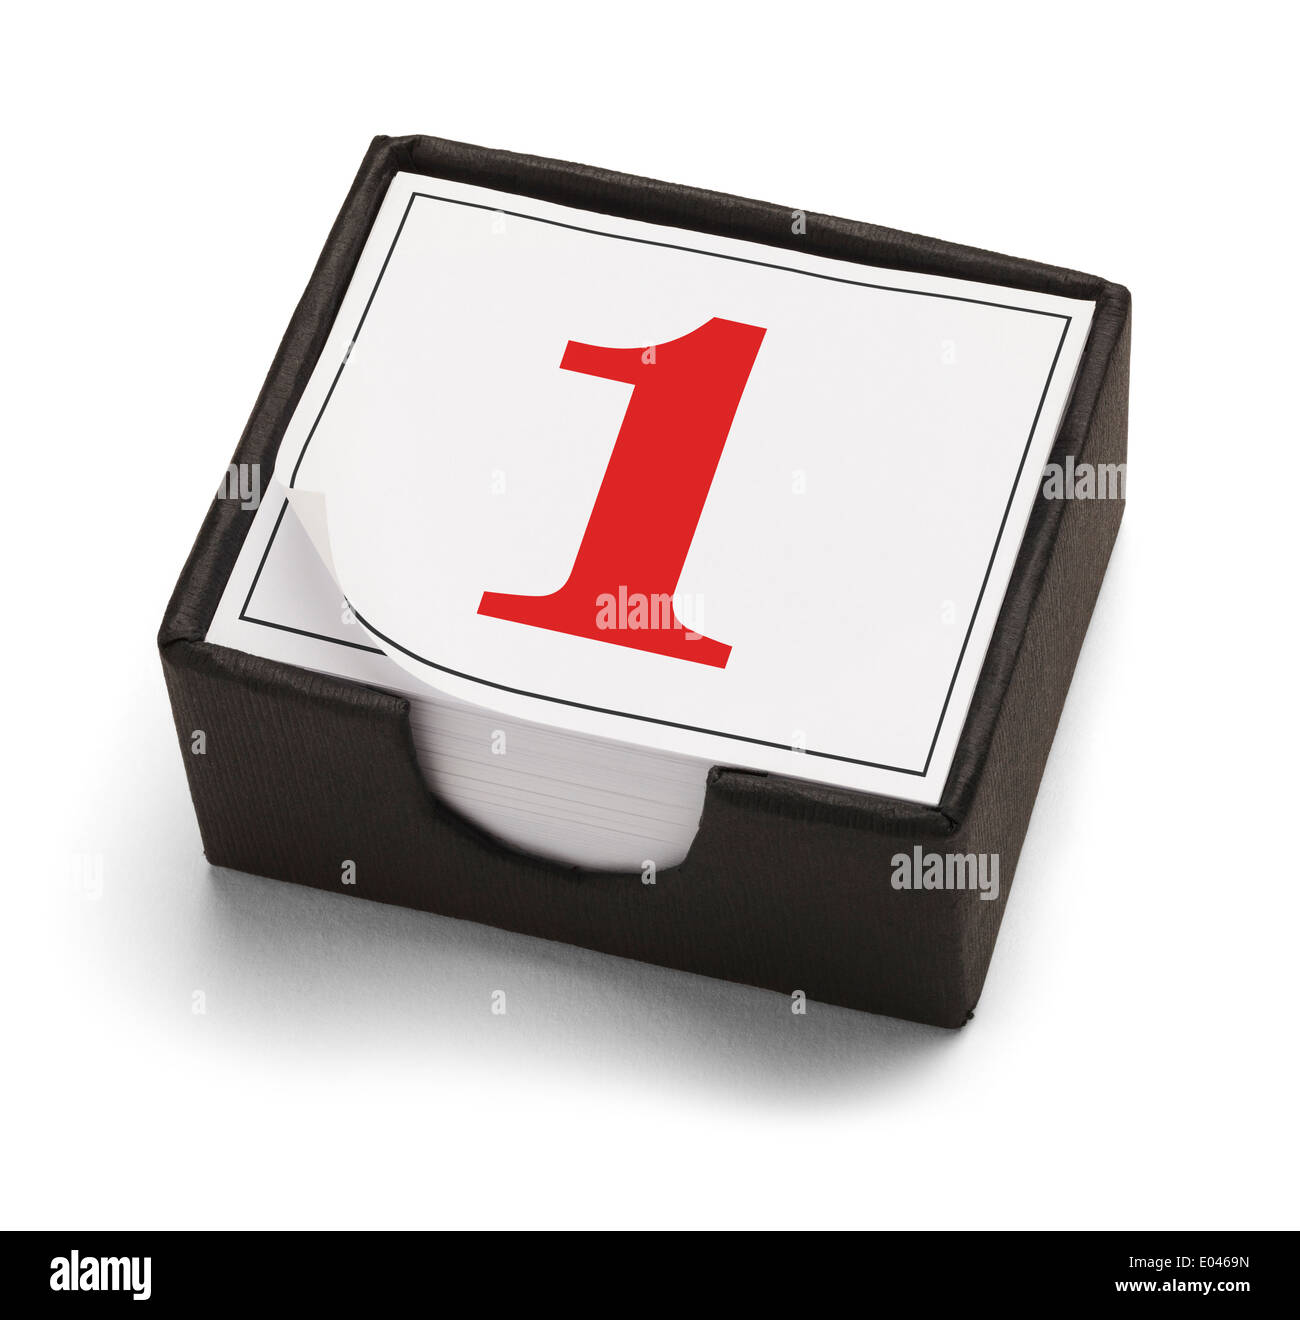 Desk Calendar with Day One or Number 1 in Red Isolated on a White Background. - Stock Image